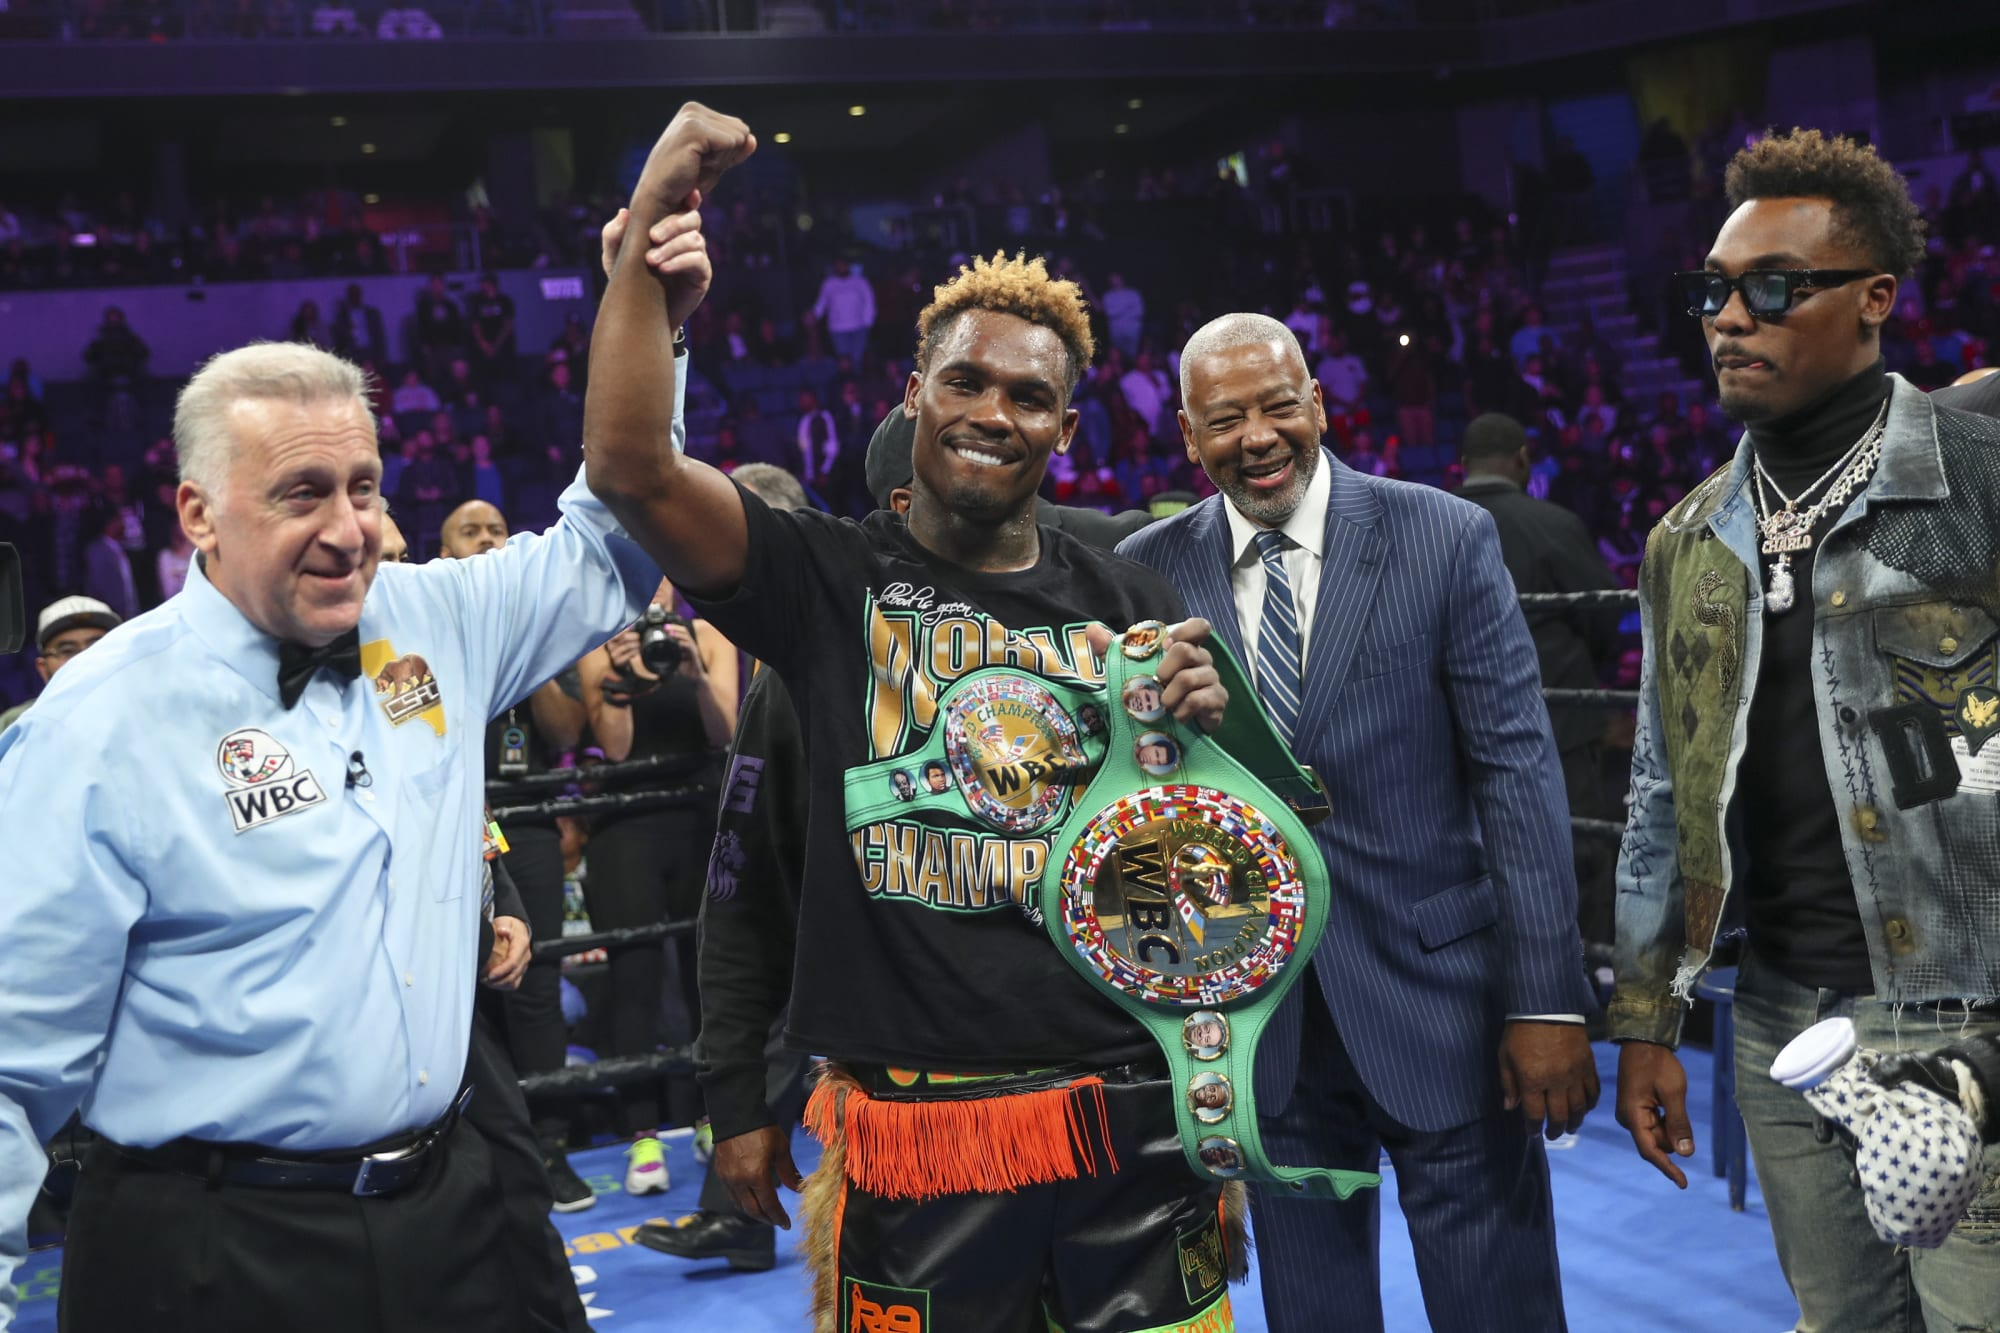 Jermell Charlo battling to be best promoter, not just best fighter